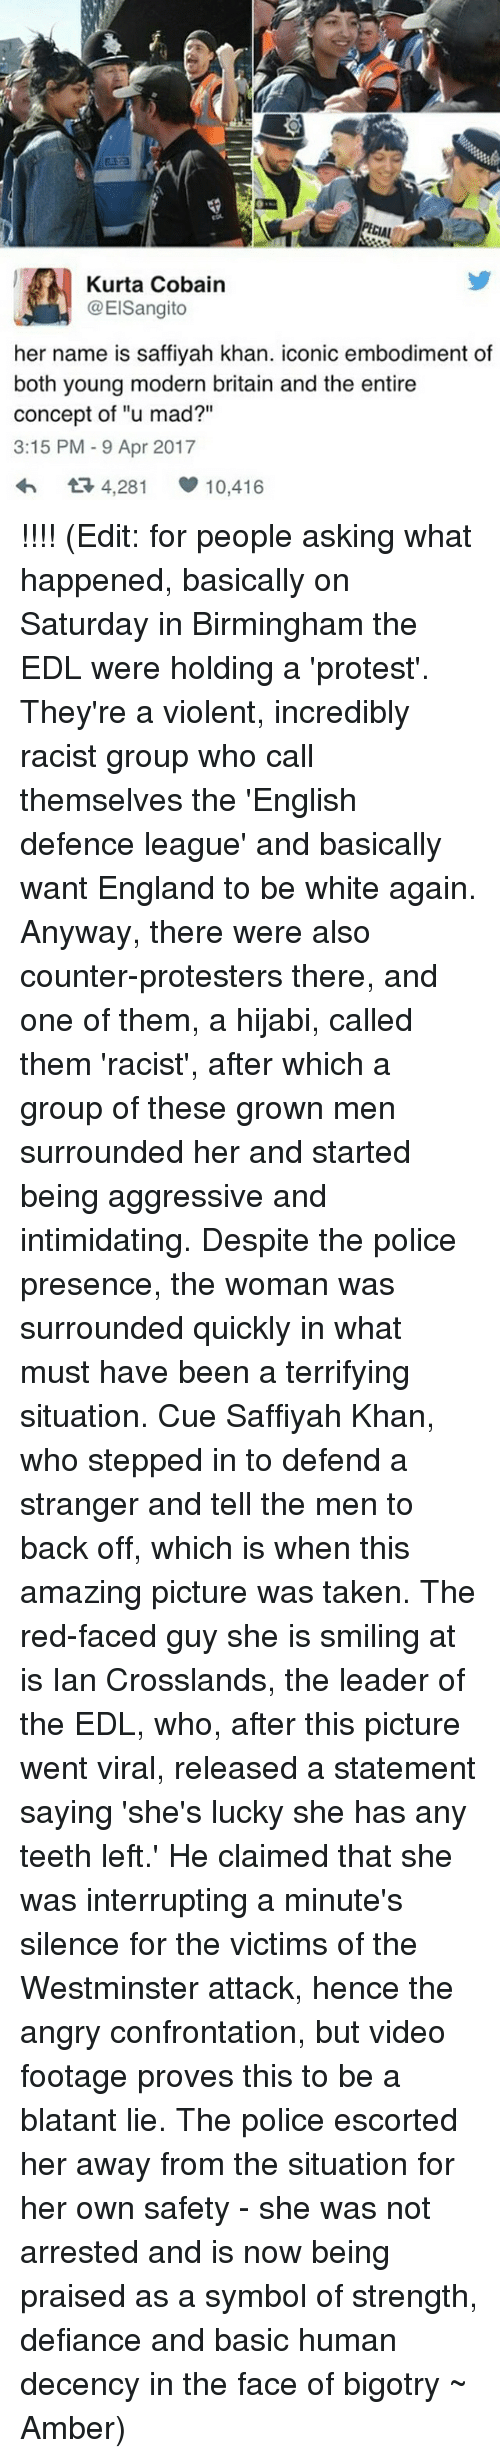 """Defiance: PECIA  Kurta Cobain  1 @ElSangito  her name is saffiyah khan. iconic embodiment of  both young modern britain and the entire  concept of """"u mad?""""  3:15 PM 9 Apr 2017  4,281 10.416 !!!! (Edit: for people asking what happened, basically on Saturday in Birmingham the EDL were holding a 'protest'. They're a violent, incredibly racist group who call themselves the 'English defence league' and basically want England to be white again. Anyway, there were also counter-protesters there, and one of them, a hijabi, called them 'racist', after which a group of these grown men surrounded her and started being aggressive and intimidating. Despite the police presence, the woman was surrounded quickly in what must have been a terrifying situation. Cue Saffiyah Khan, who stepped in to defend a stranger and tell the men to back off, which is when this amazing picture was taken. The red-faced guy she is smiling at is Ian Crosslands, the leader of the EDL, who, after this picture went viral, released a statement saying 'she's lucky she has any teeth left.' He claimed that she was interrupting a minute's silence for the victims of the Westminster attack, hence the angry confrontation, but video footage proves this to be a blatant lie. The police escorted her away from the situation for her own safety - she was not arrested and is now being praised as a symbol of strength, defiance and basic human decency in the face of bigotry ~ Amber)"""